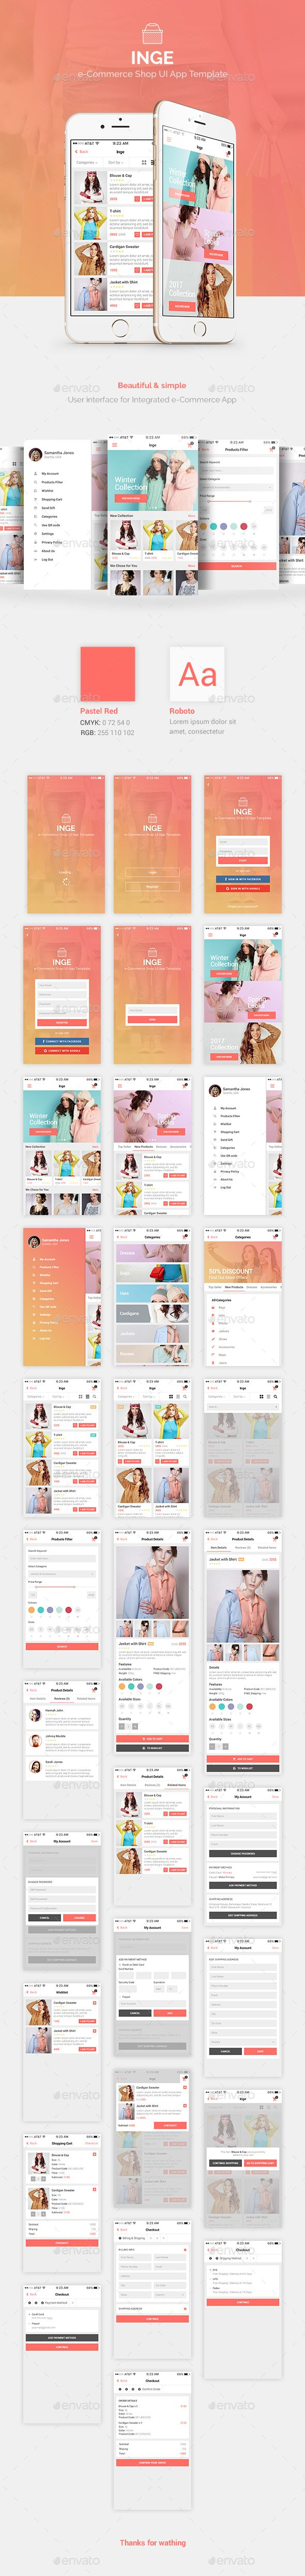 Inge e-Commerce Shop UI App Template — Photoshop PSD #modern #ui kit • Download ➝ https://graphicriver.net/item/inge-ecommerce-shop-ui-app-template/19260602?ref=pxcr